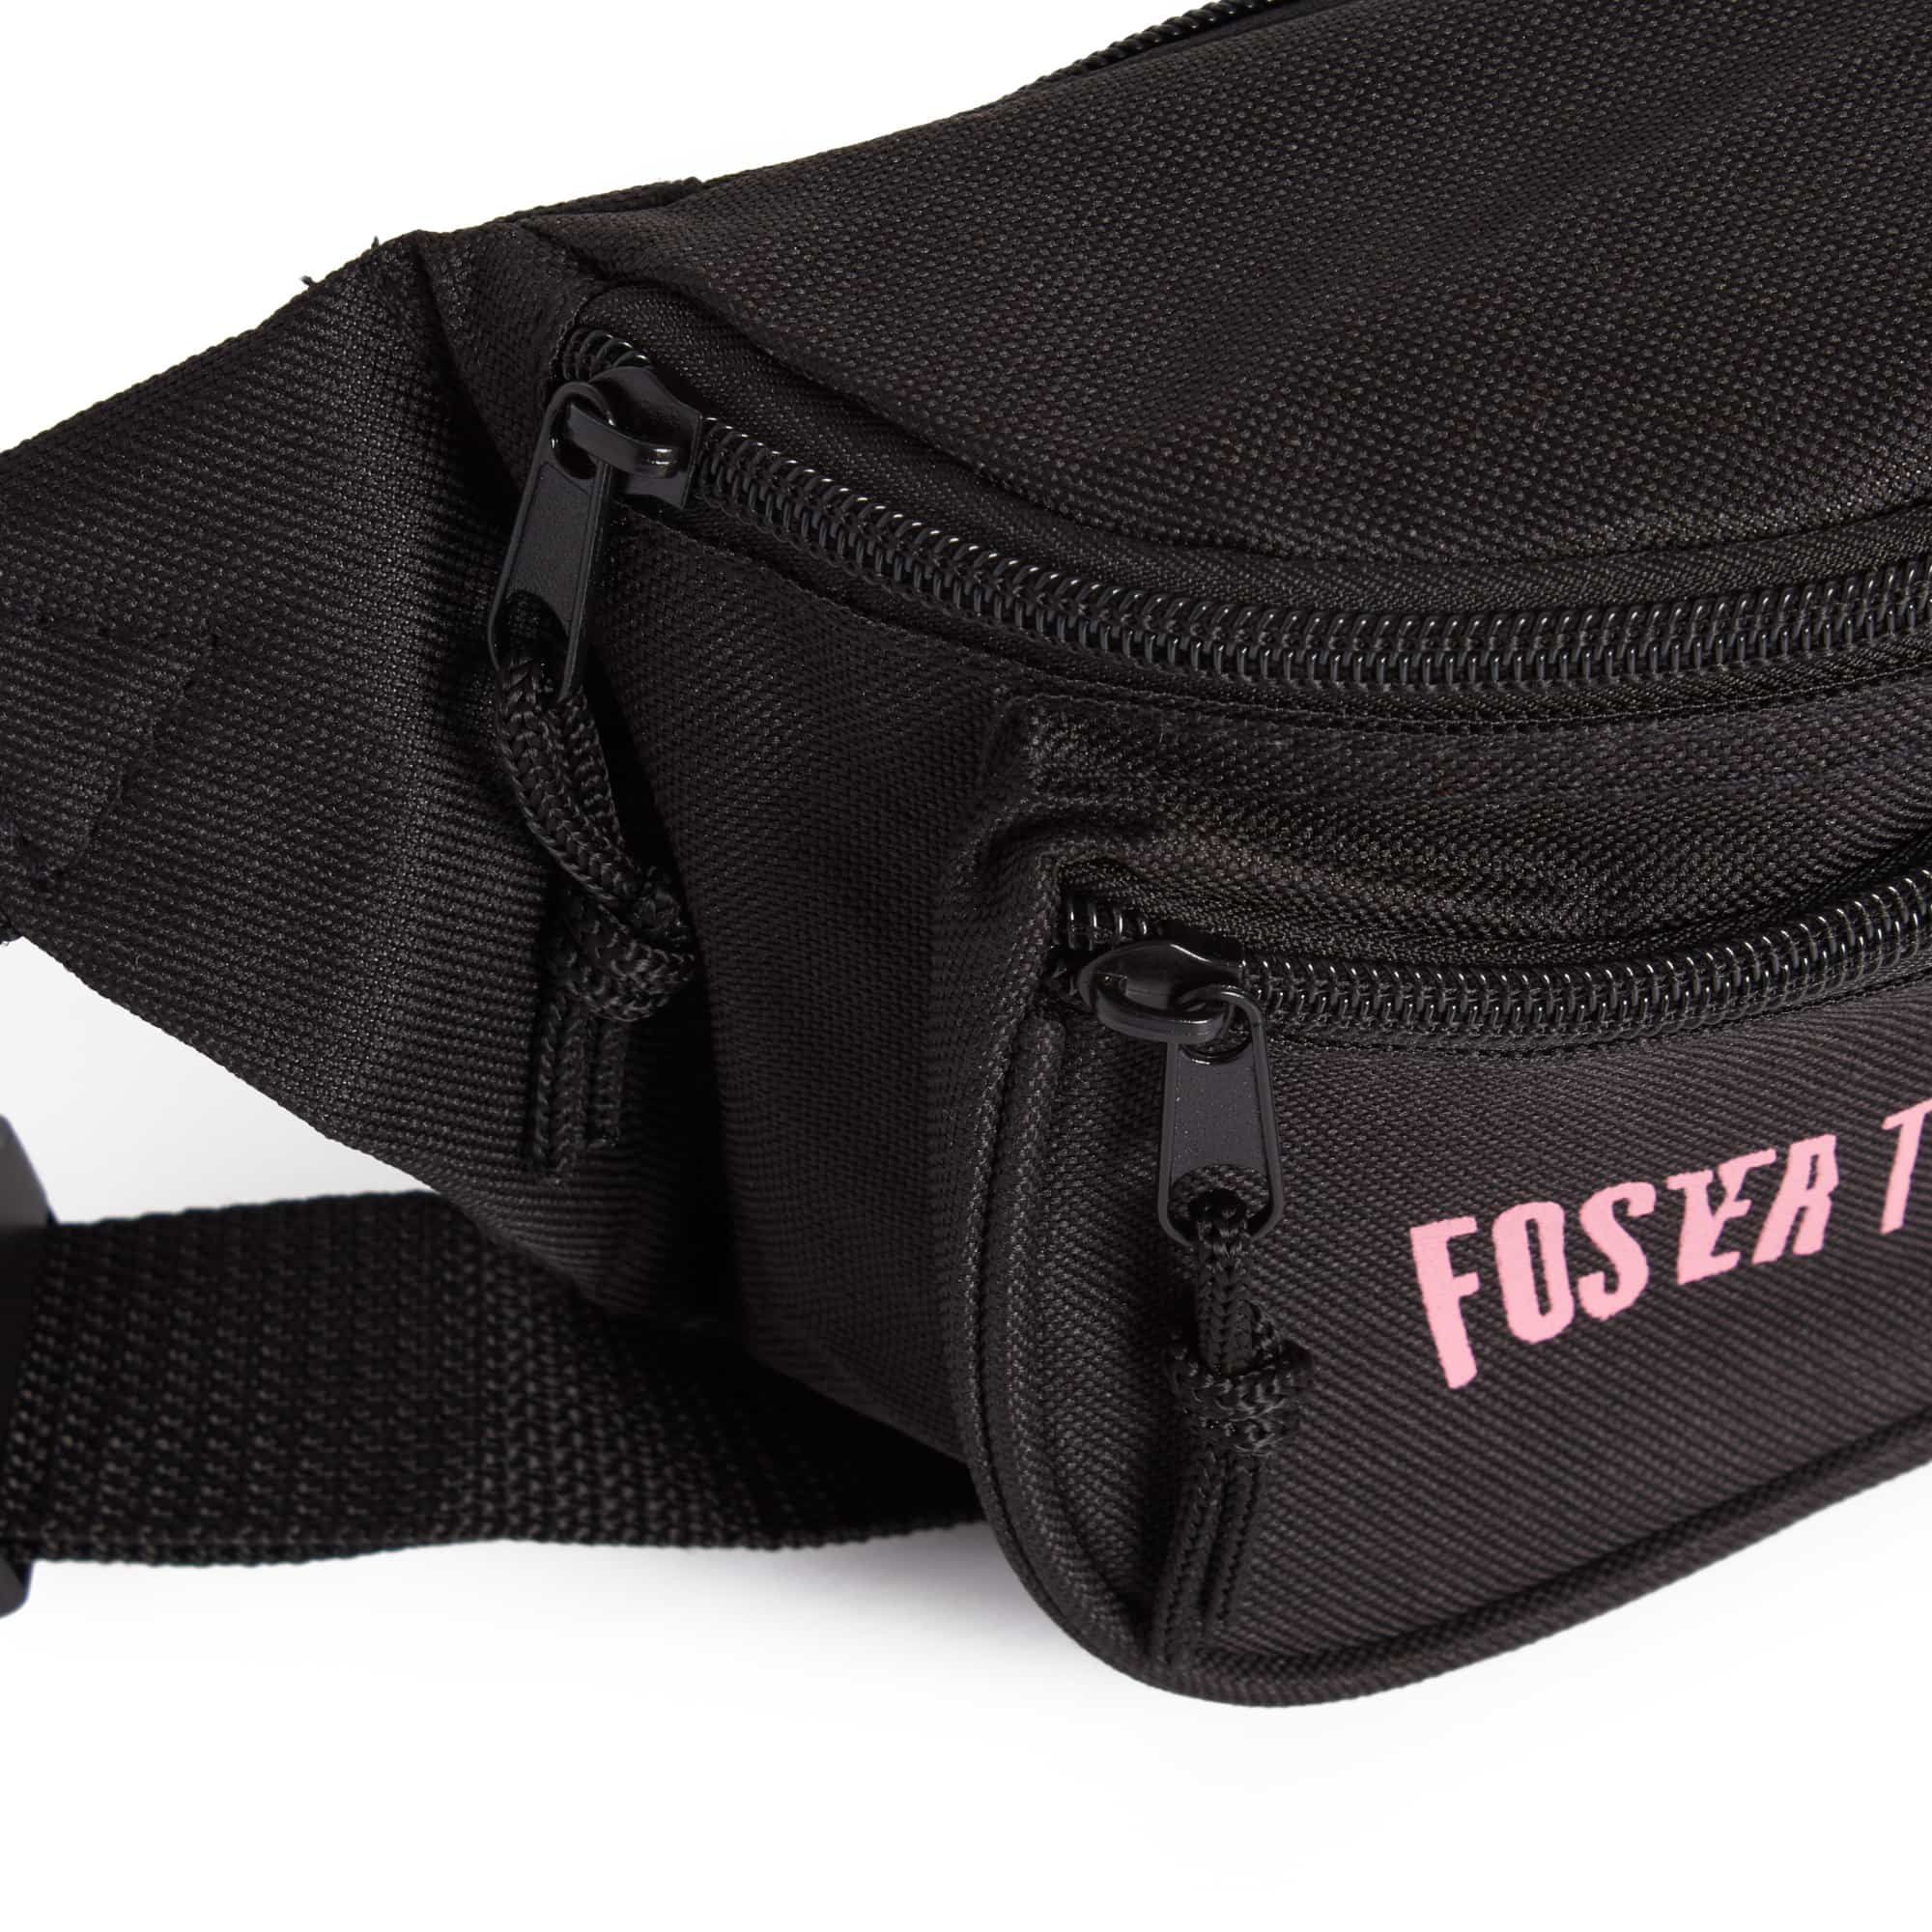 'Foster The People' Sling Bag